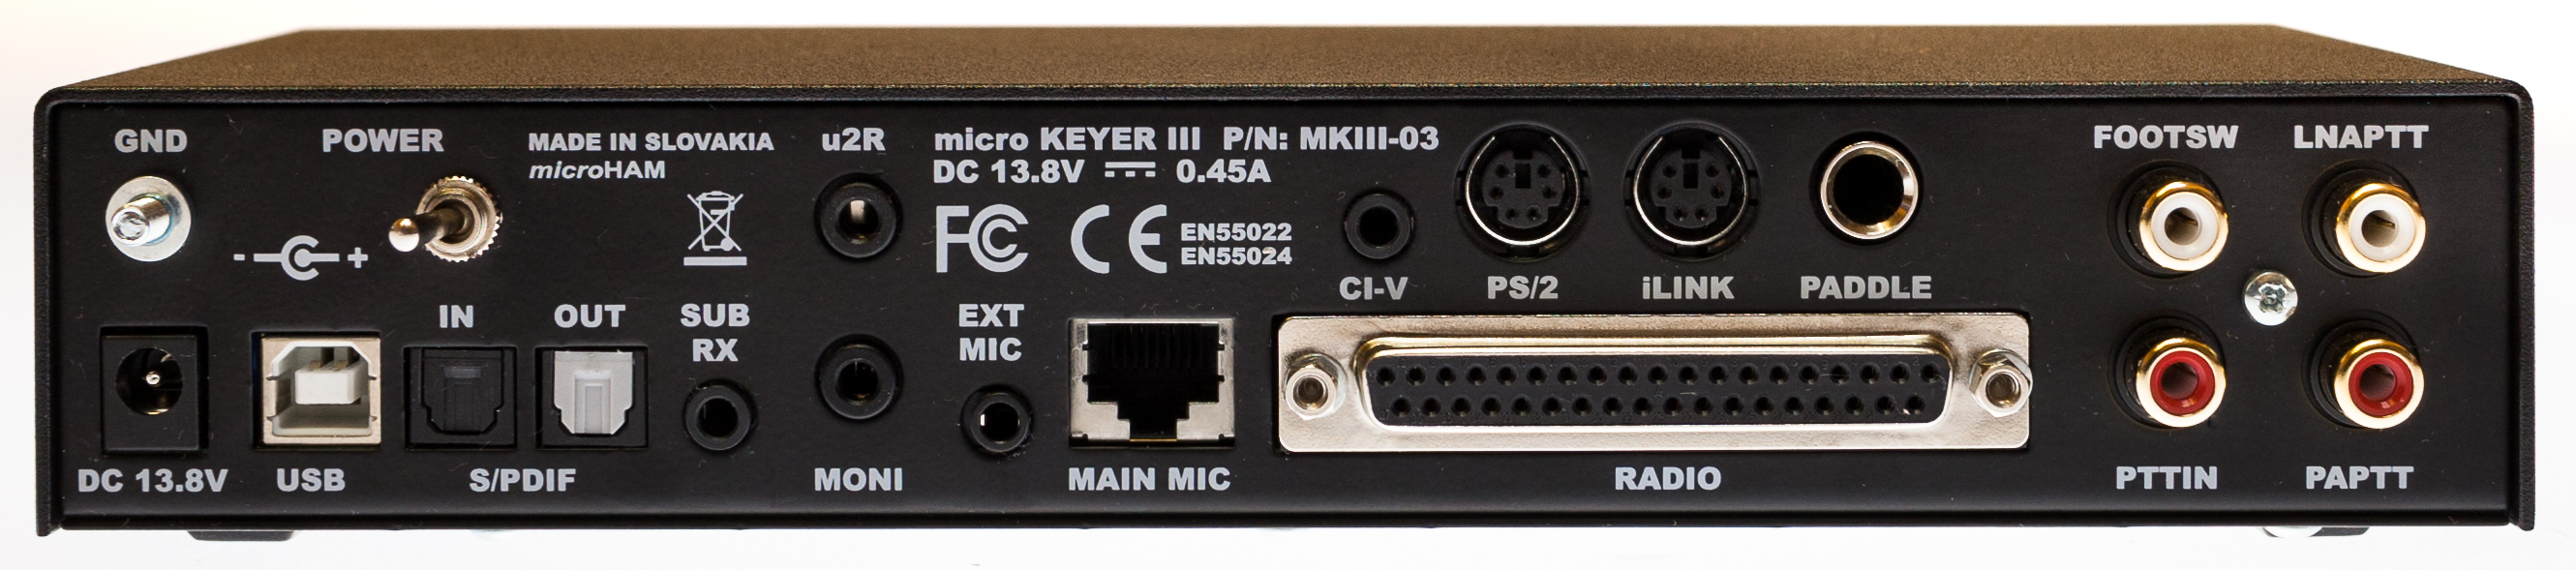 microham micro keyer iii rear